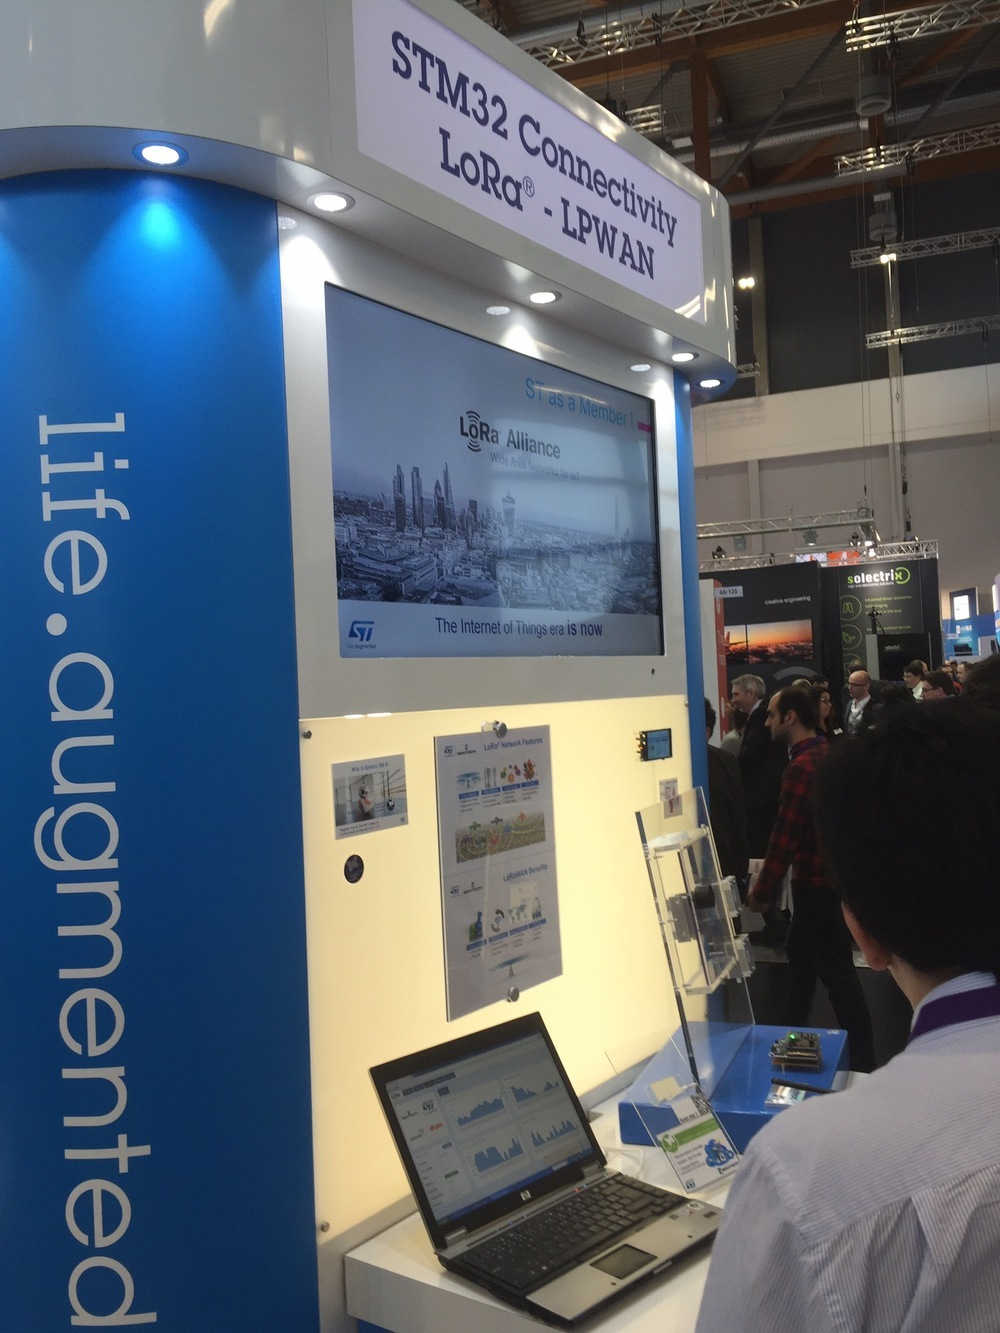 Embedded World 2016: куда катится embedded-мир? - 18